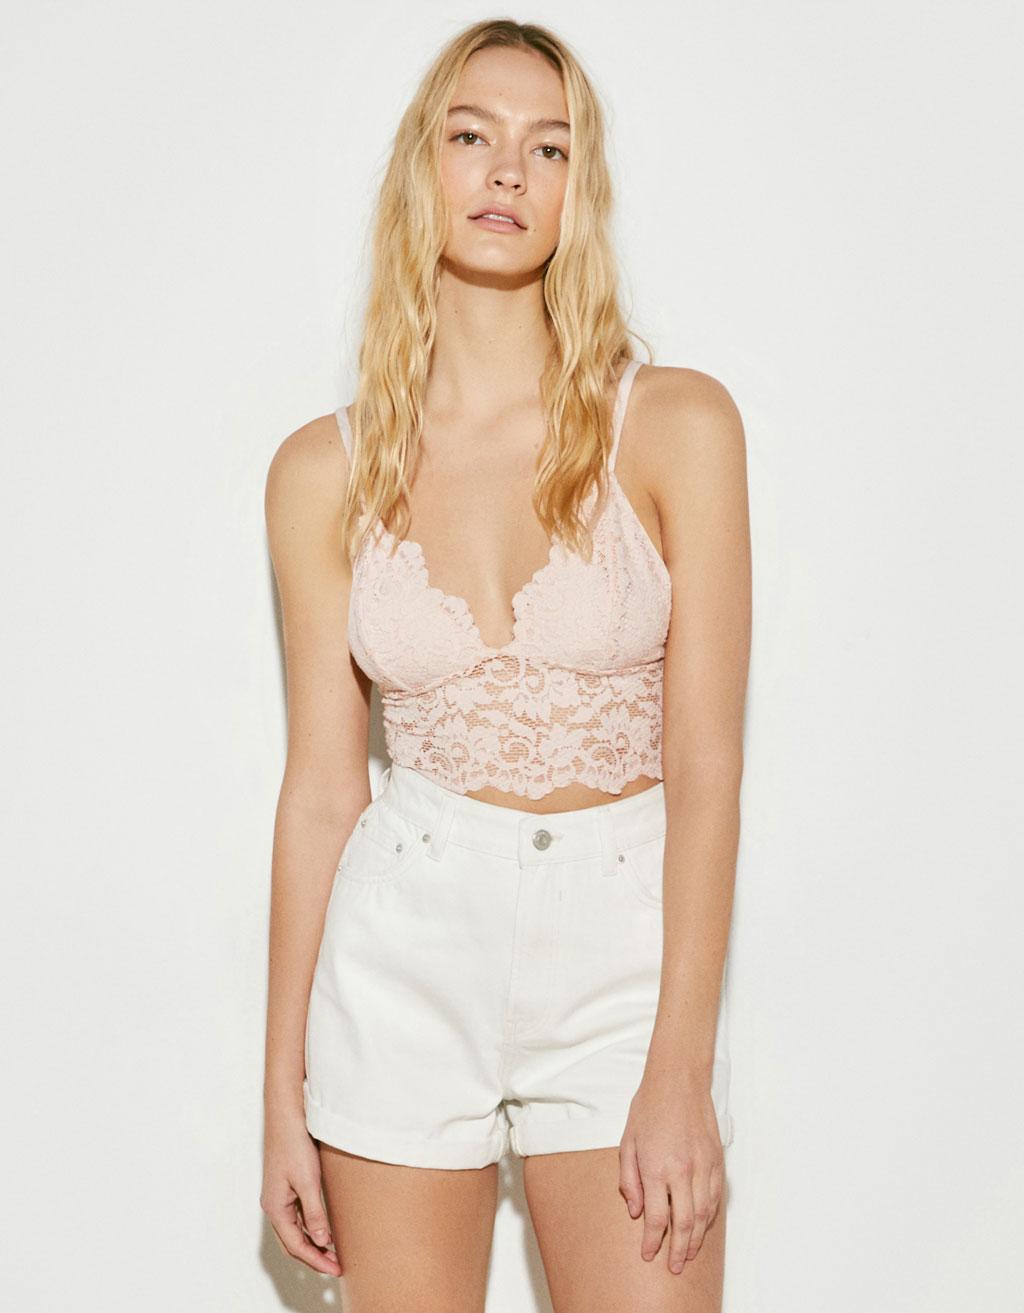 Lace-trimmed bralette